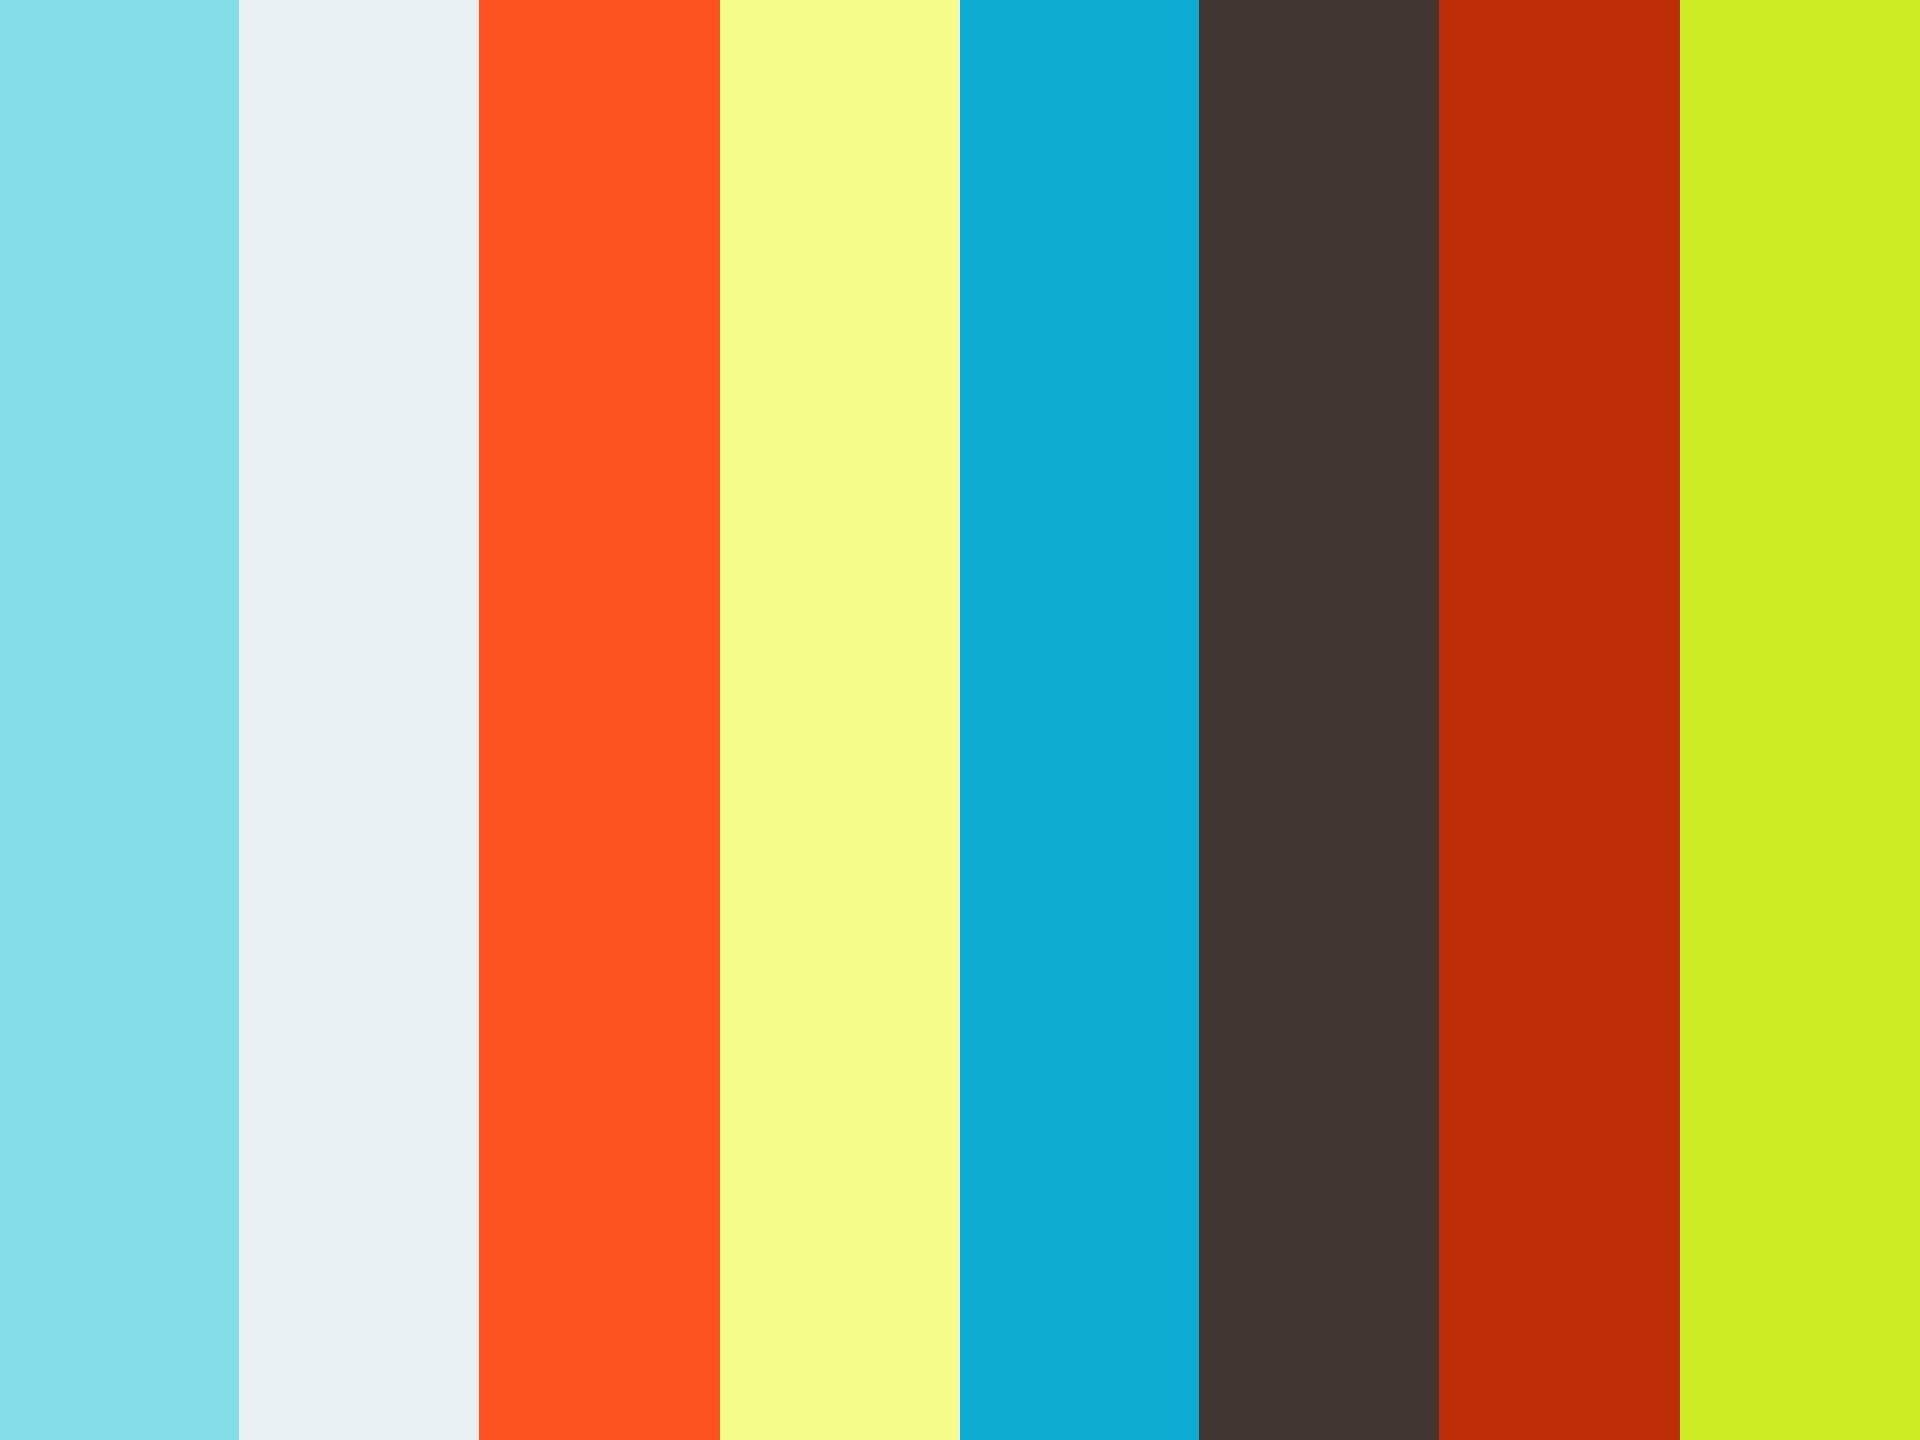 Trauma/Colonic Volvulus Core Subjects 2012